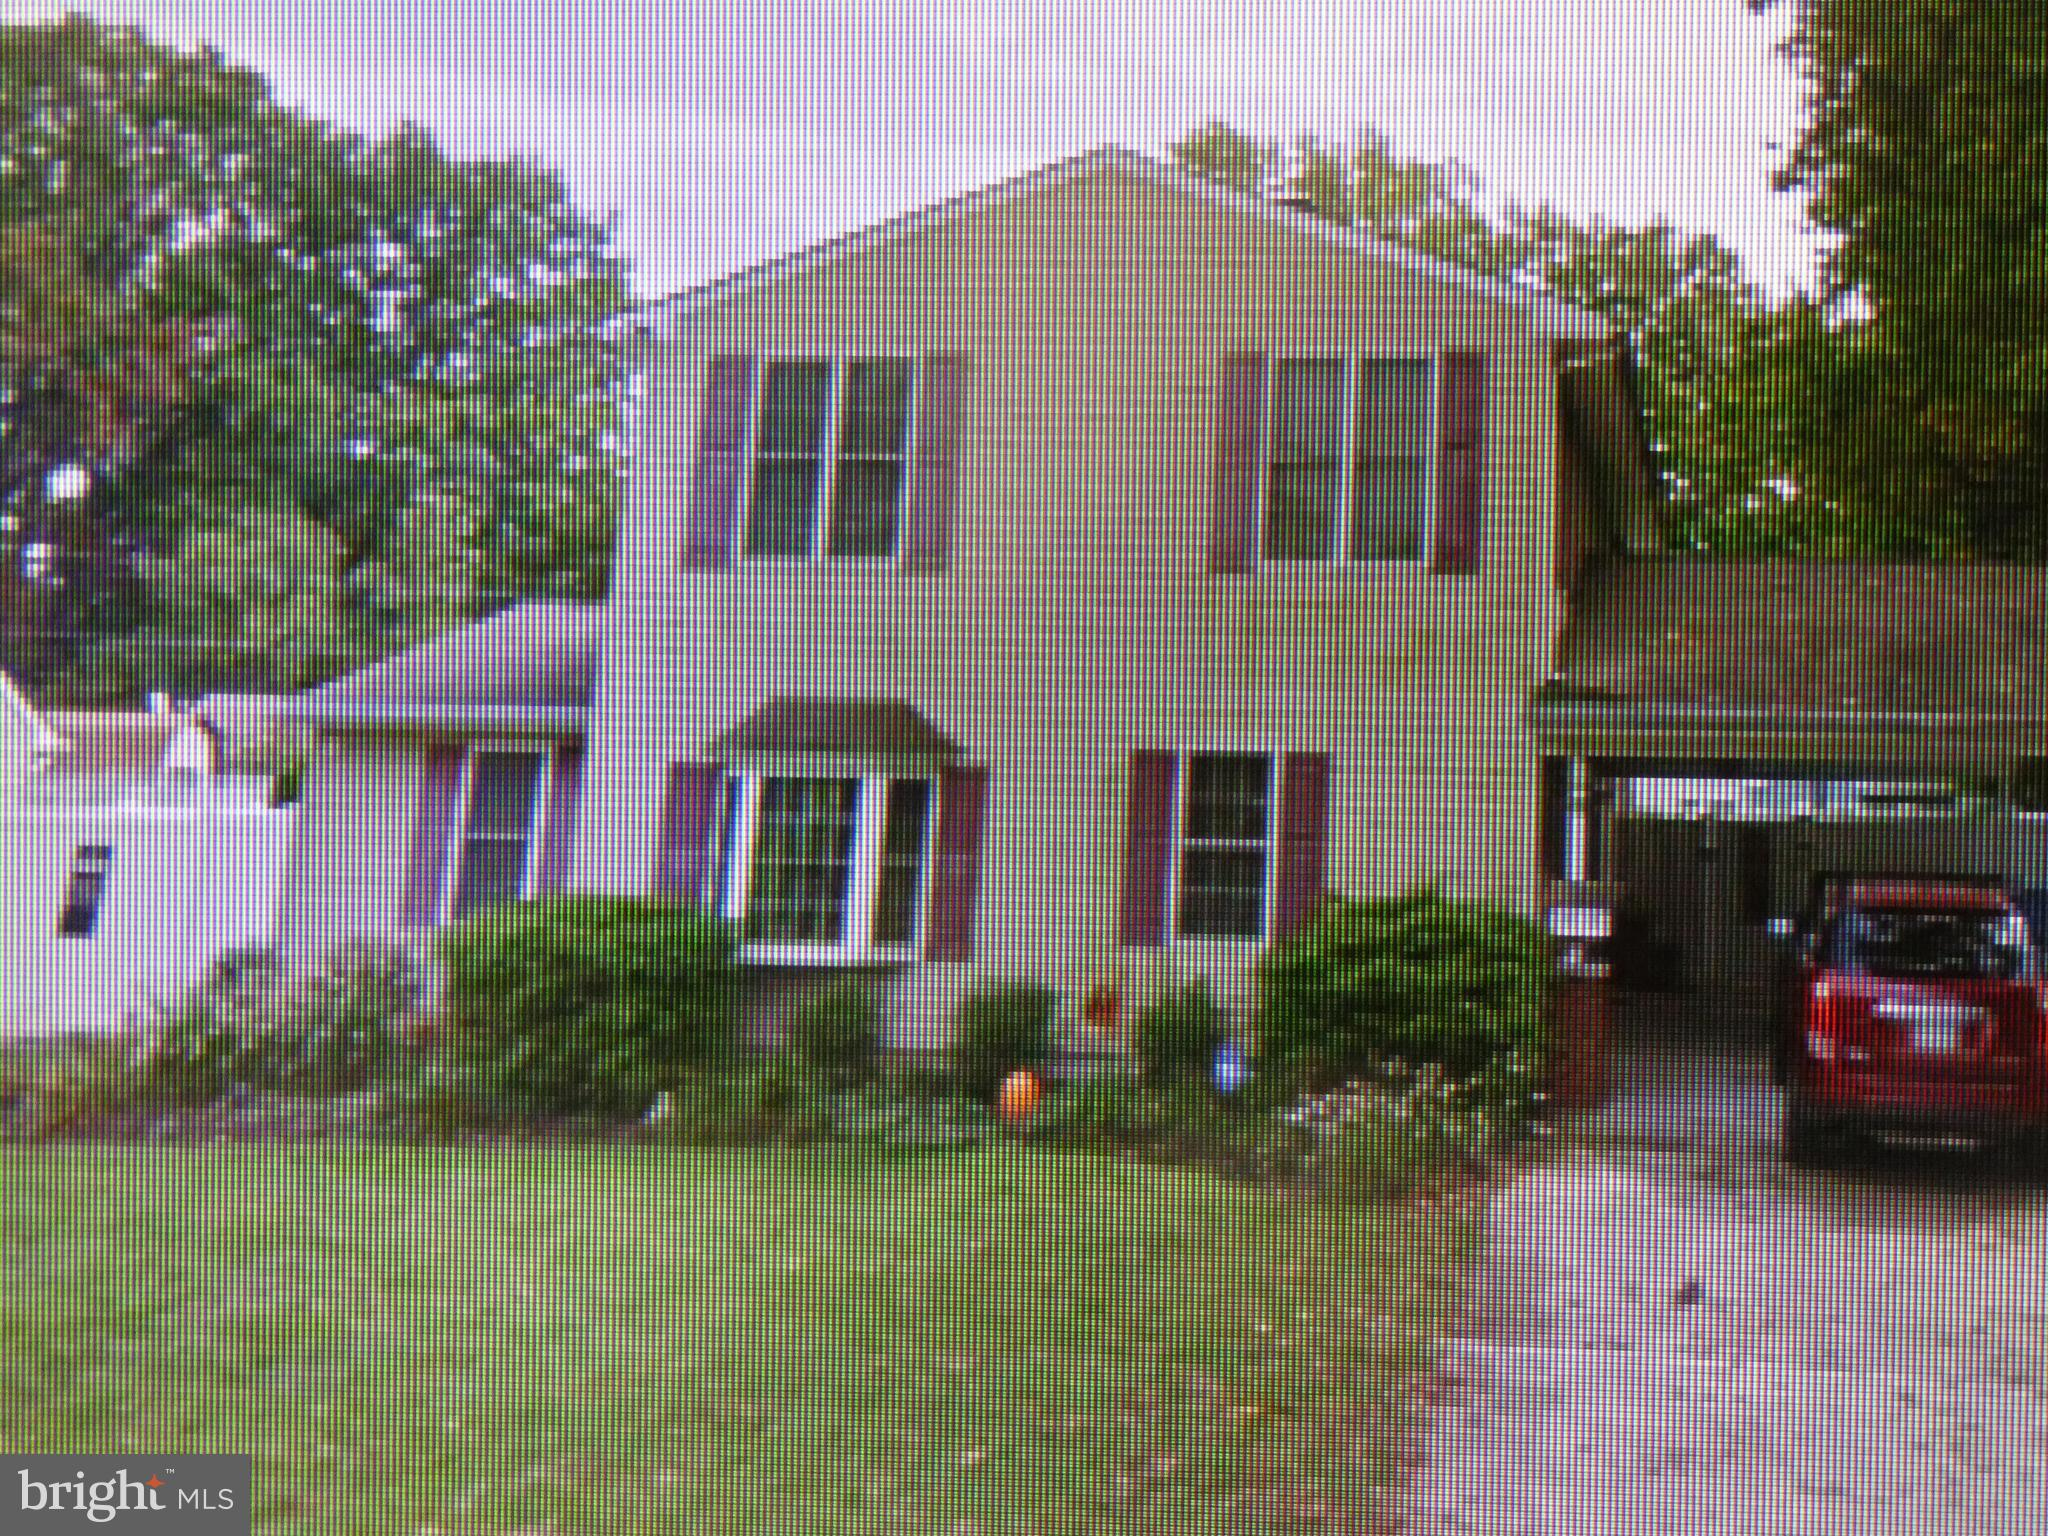 46 TAMARACK LANE, LEVITTOWN, PA 19054